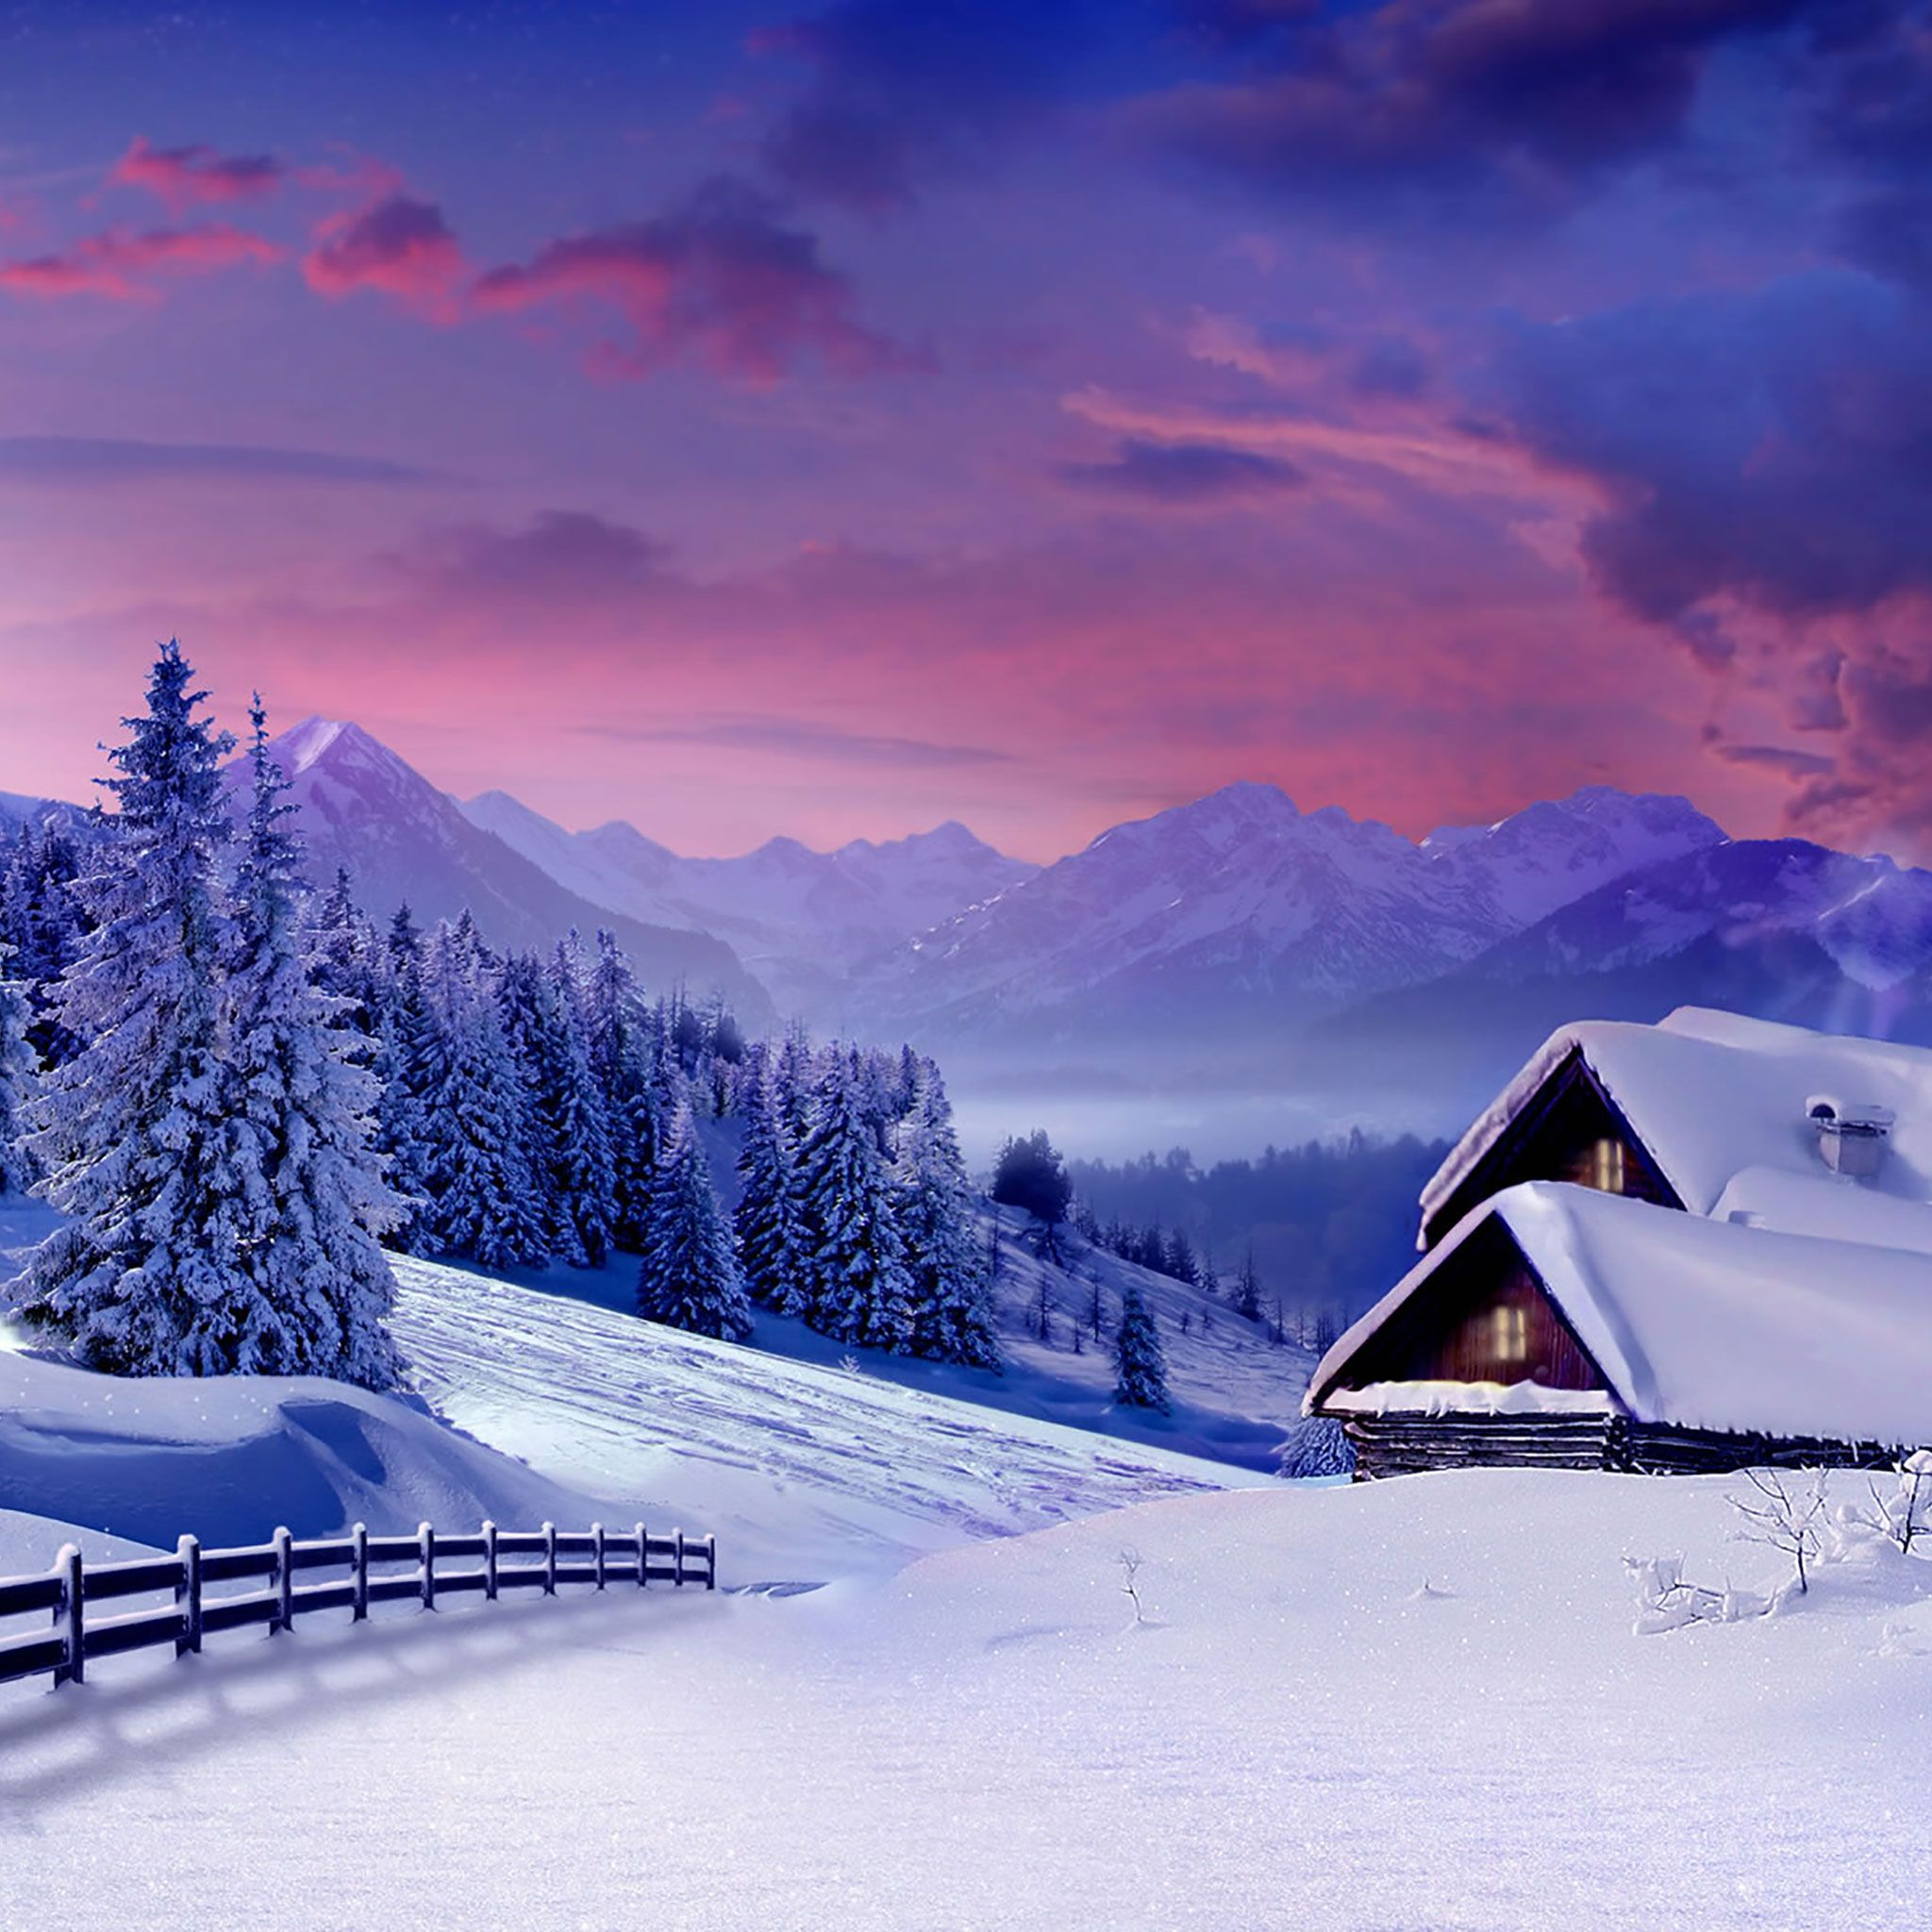 snow house tap to see more stunning winter wallpapers mobile9